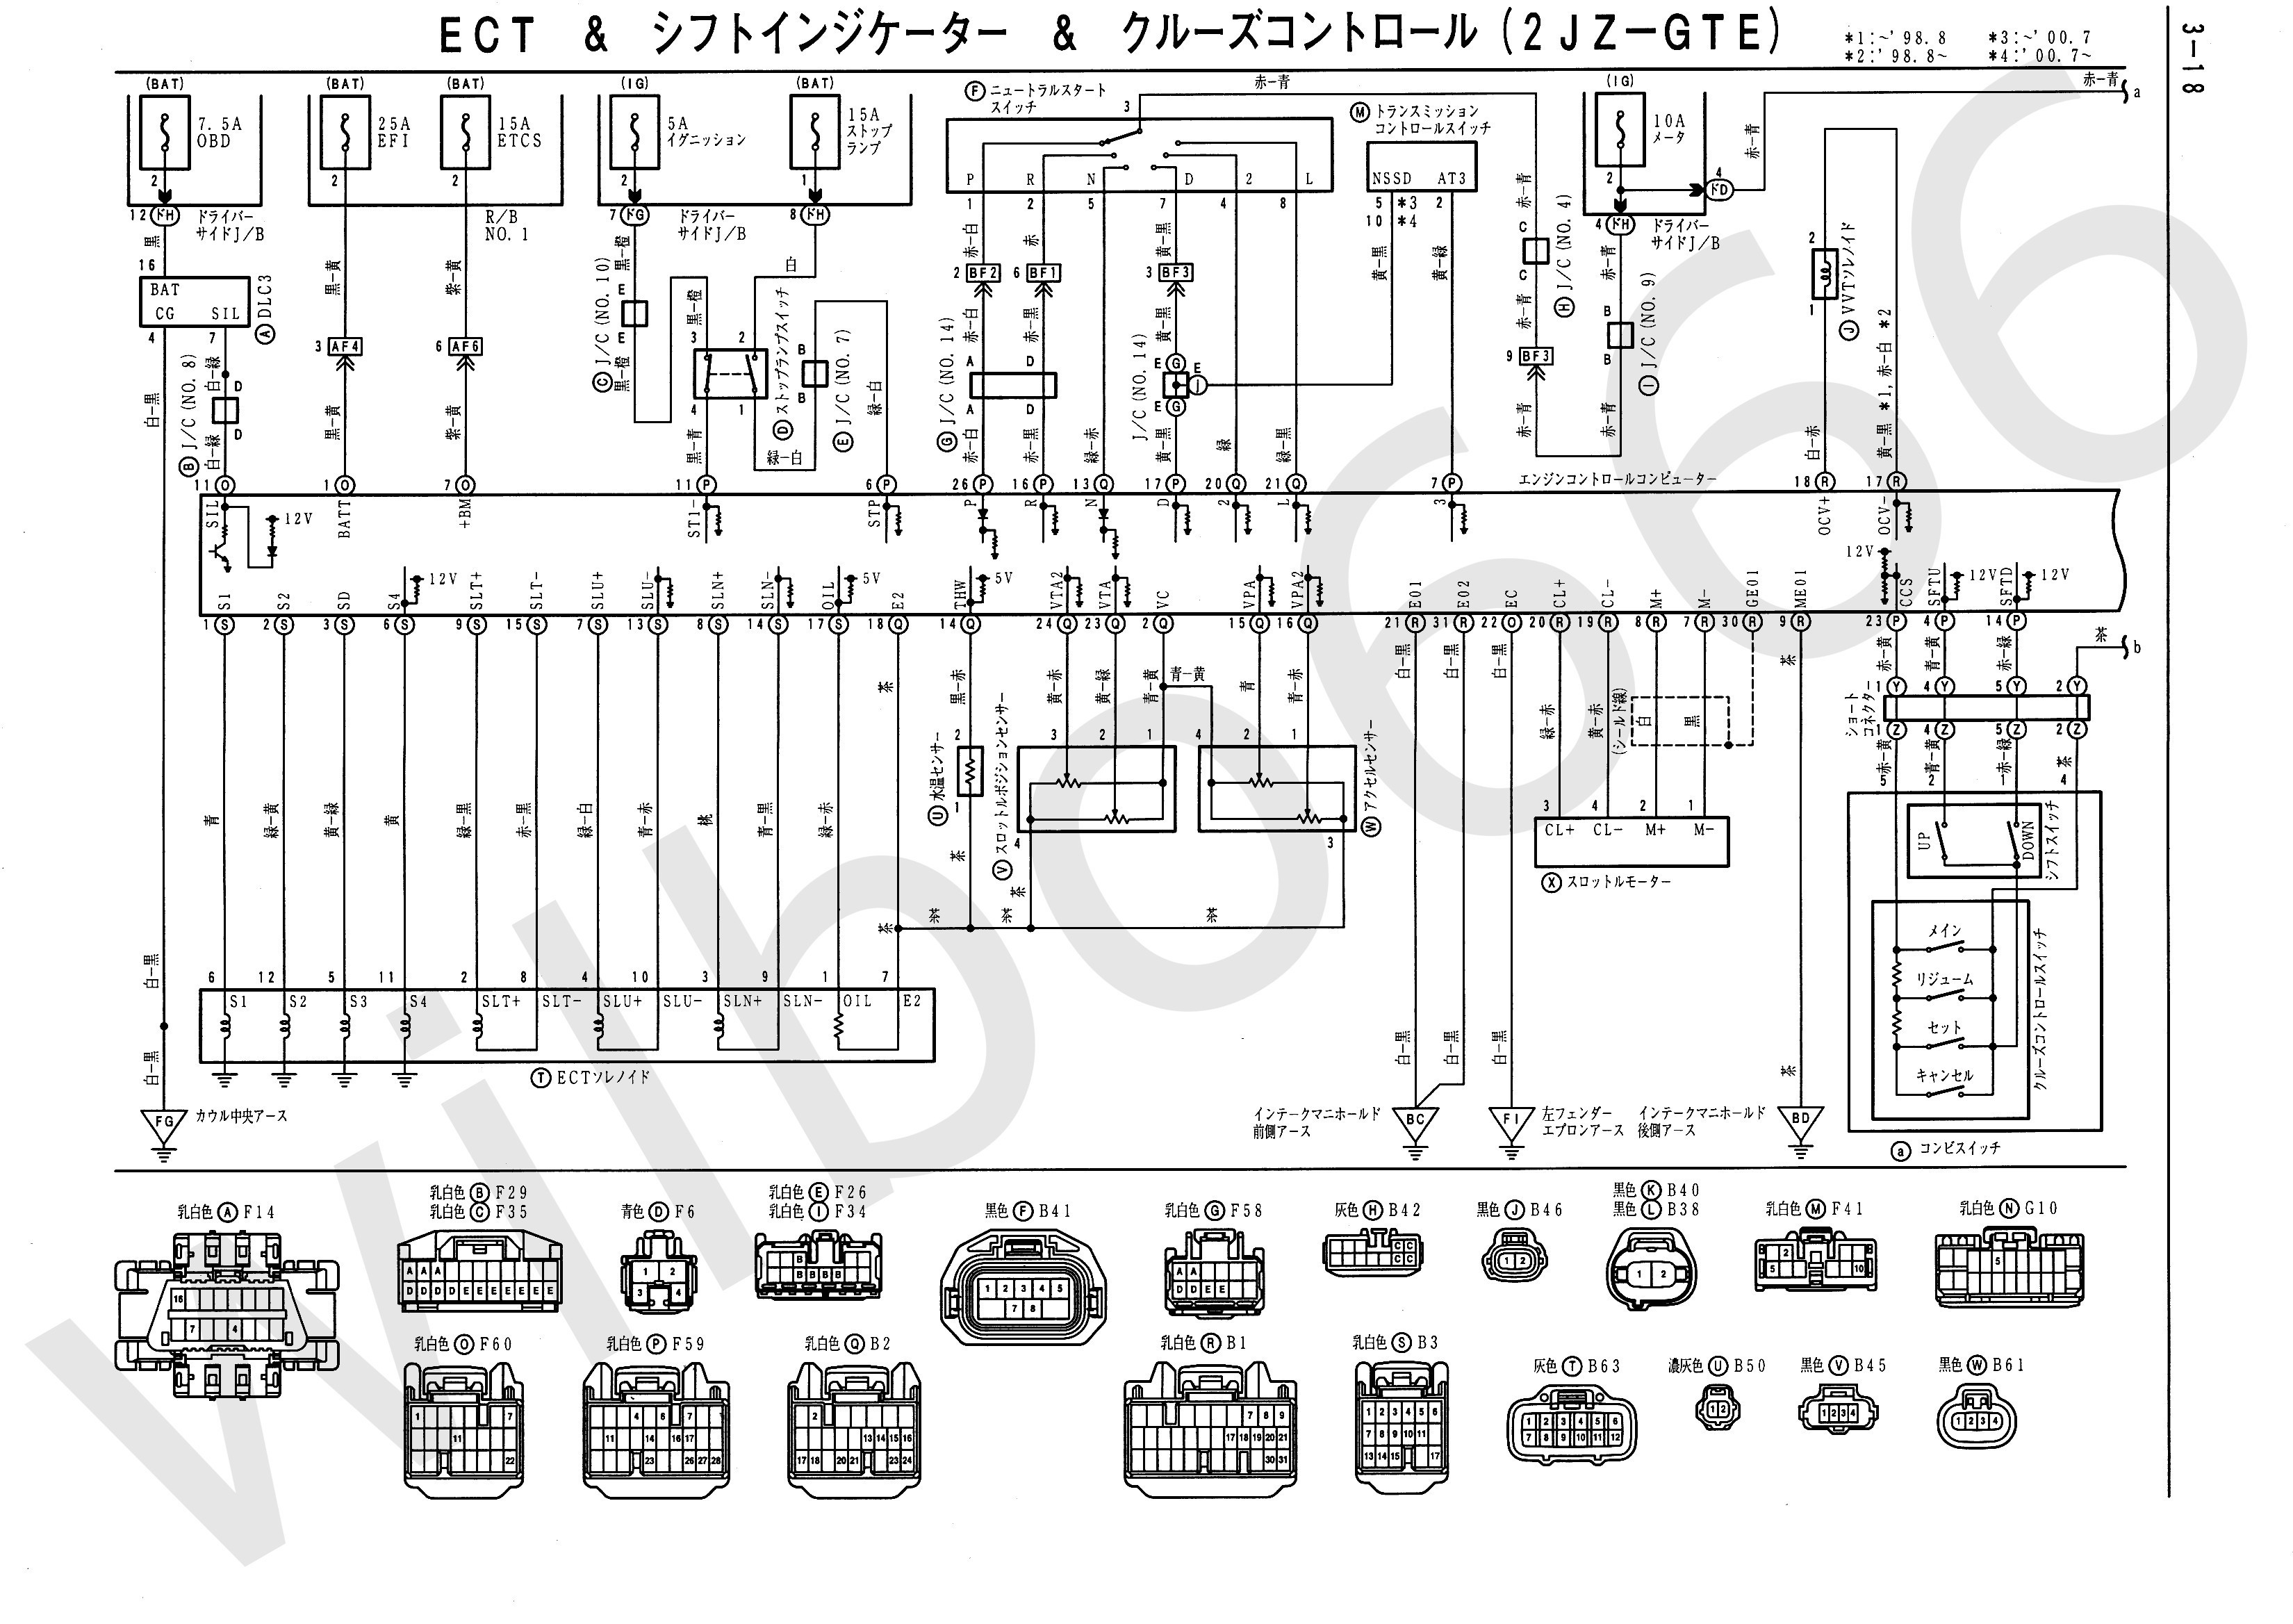 Engine Wiring Diagram Engine Schematic Diagram Best Obd2 Wiring Diagram Diagram – My Of Engine Wiring Diagram